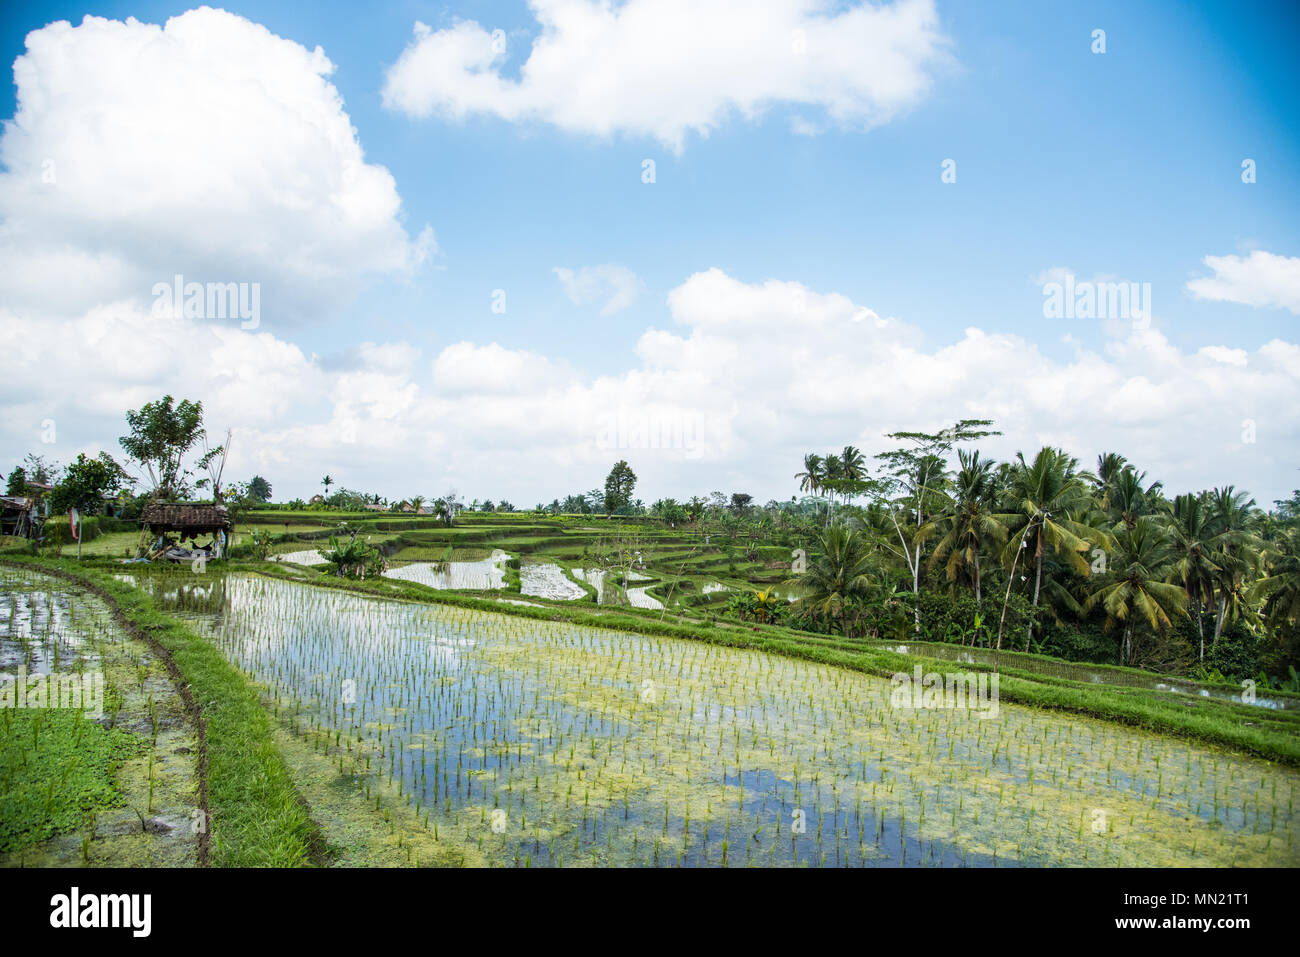 The Tegallalang Rice Fields - Bali - Stock Image